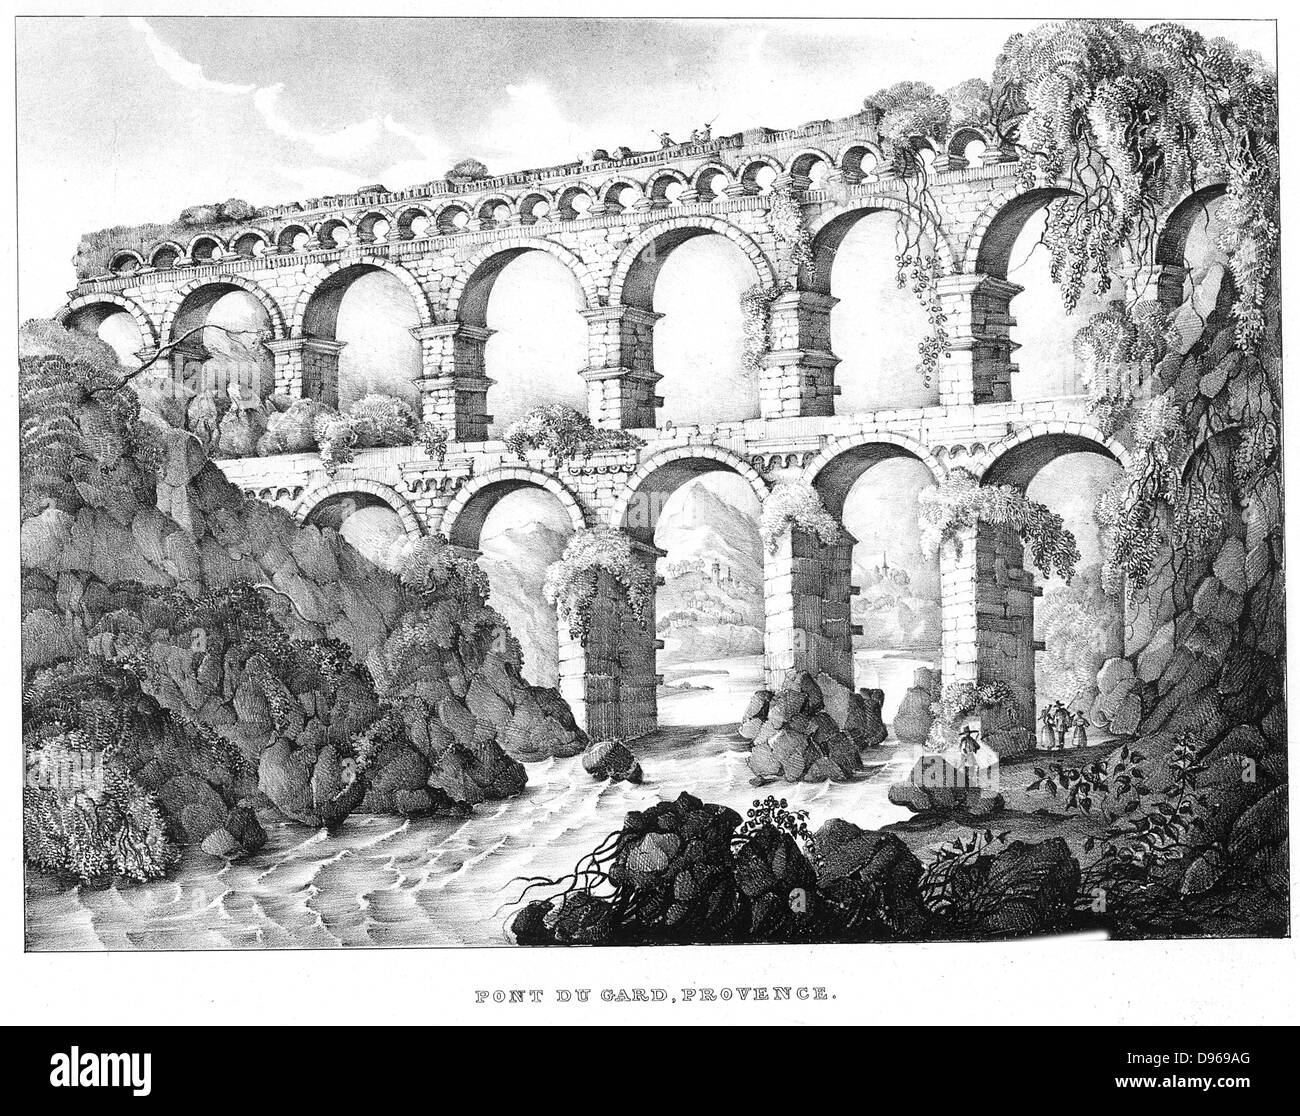 Pont du Gard, Nimes, southern France. Roman aqueduct built c18 BC. No cement used. 19th century lithograph. - Stock Image